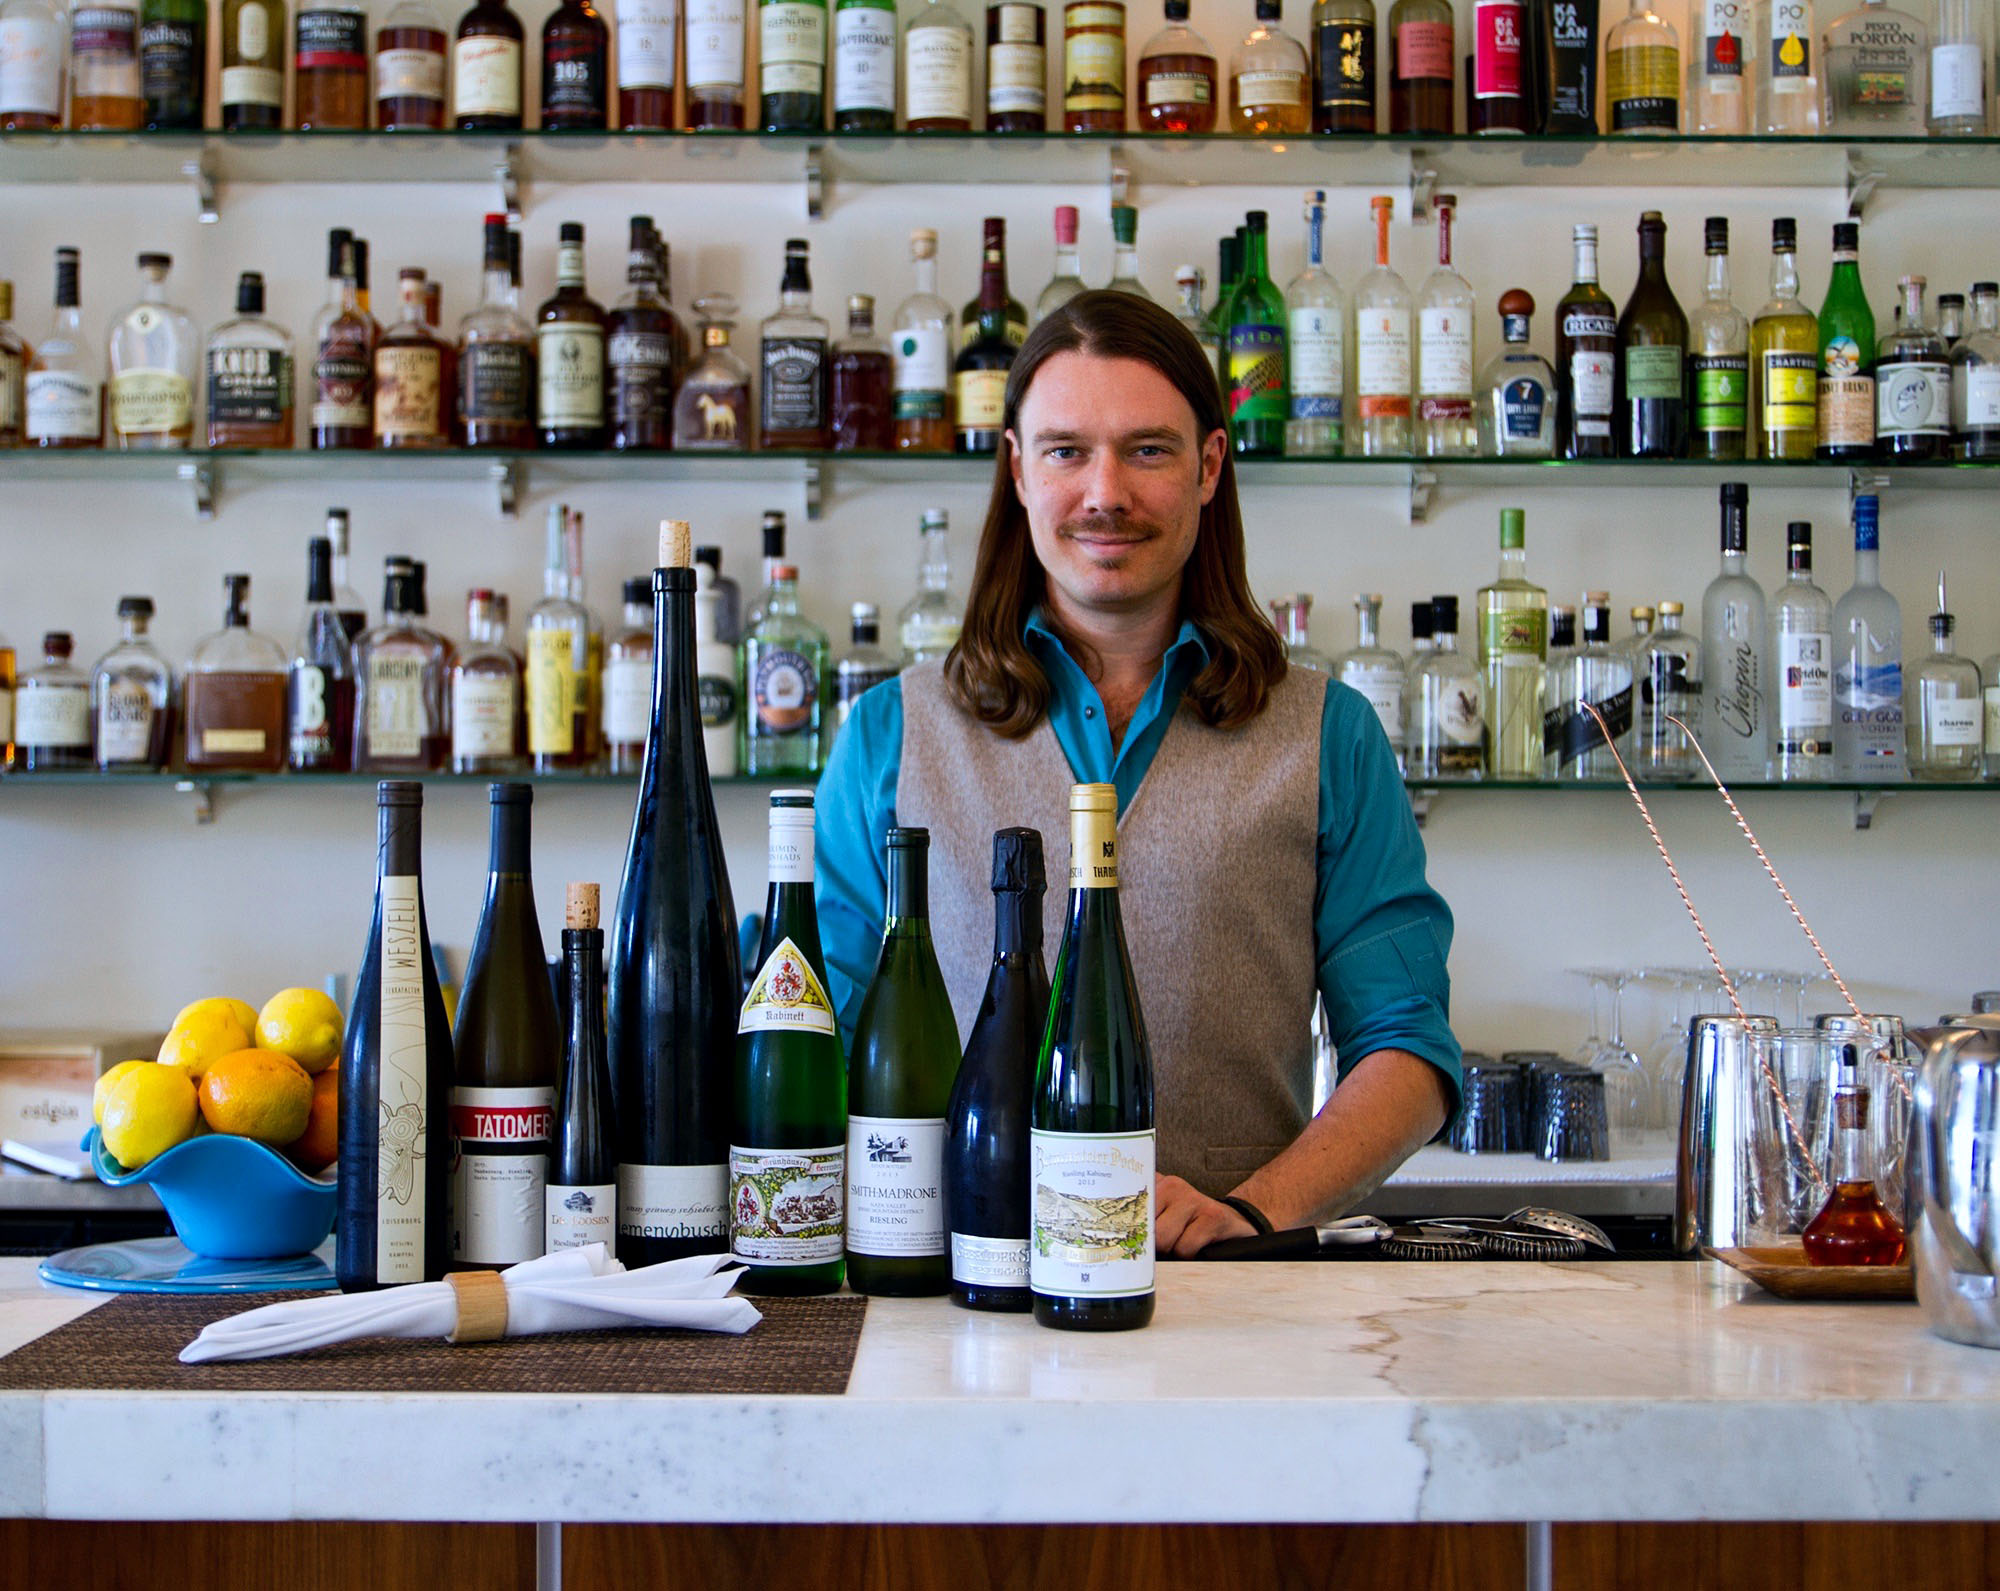 Co-owner and wine director Drew Langley displays his summer Riesling collection. (Photo by Camellia Tse/KCRW)